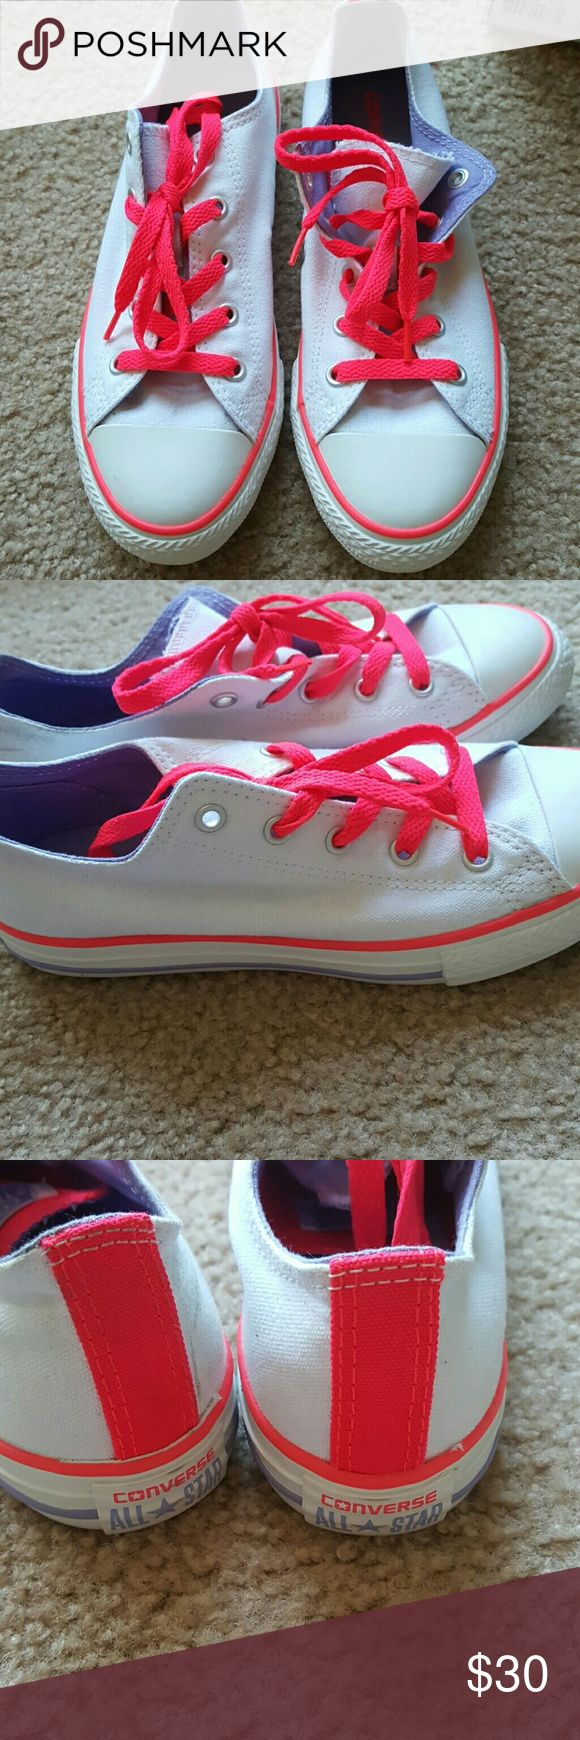 Kid's Converse Brand new Converse for kids. Size 3 Converse Shoes Sneakers